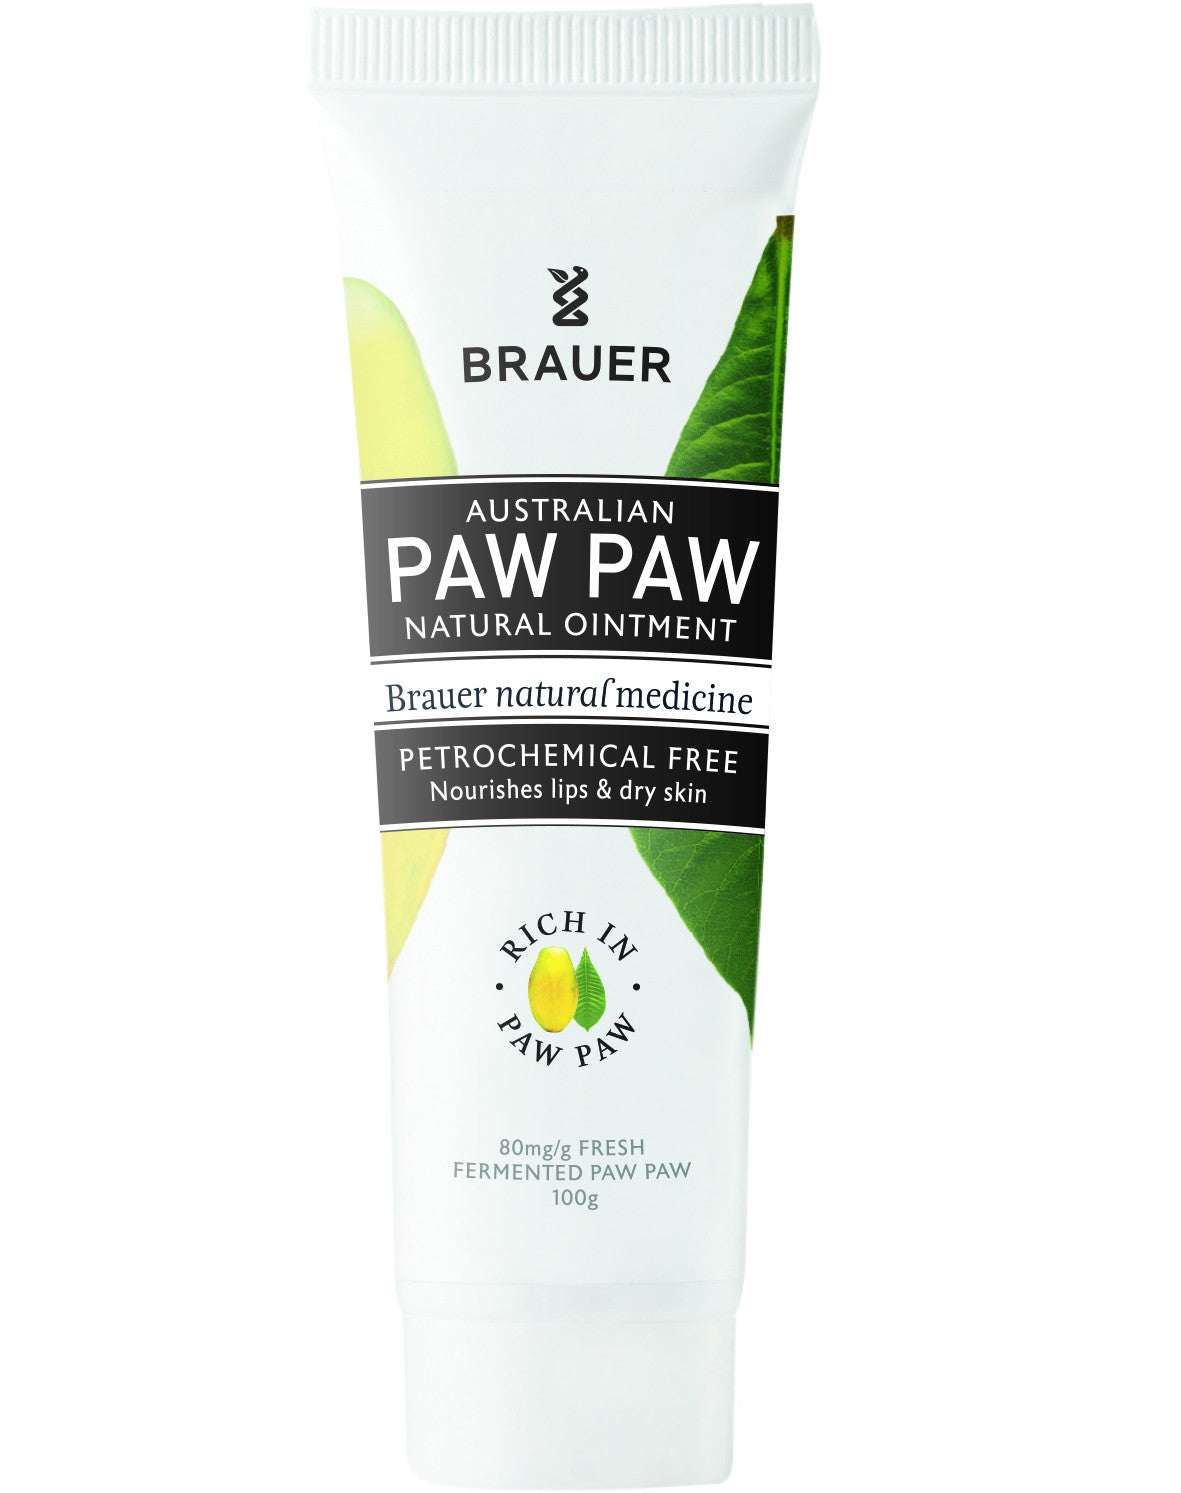 Paw Paw Tube 100g - Brauer Natural Medicine